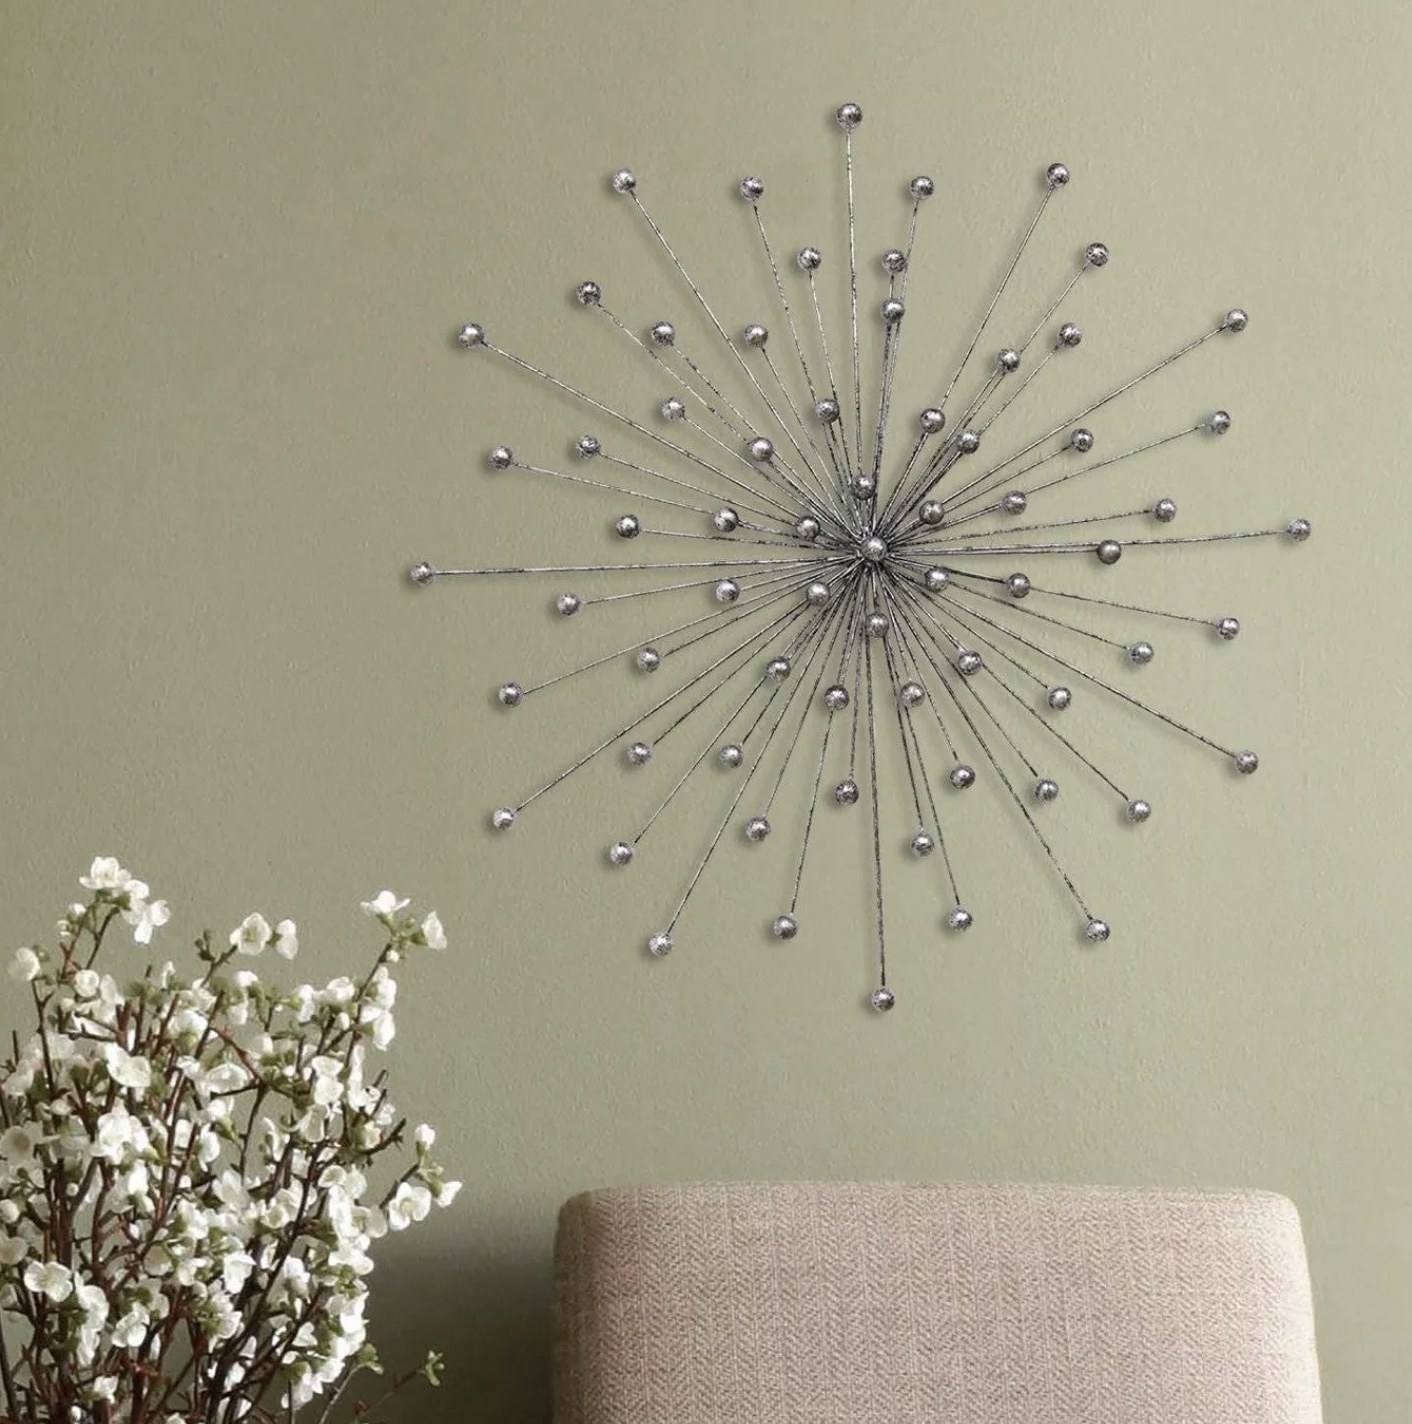 A silver chrome starburst wall decor hanging on a wall